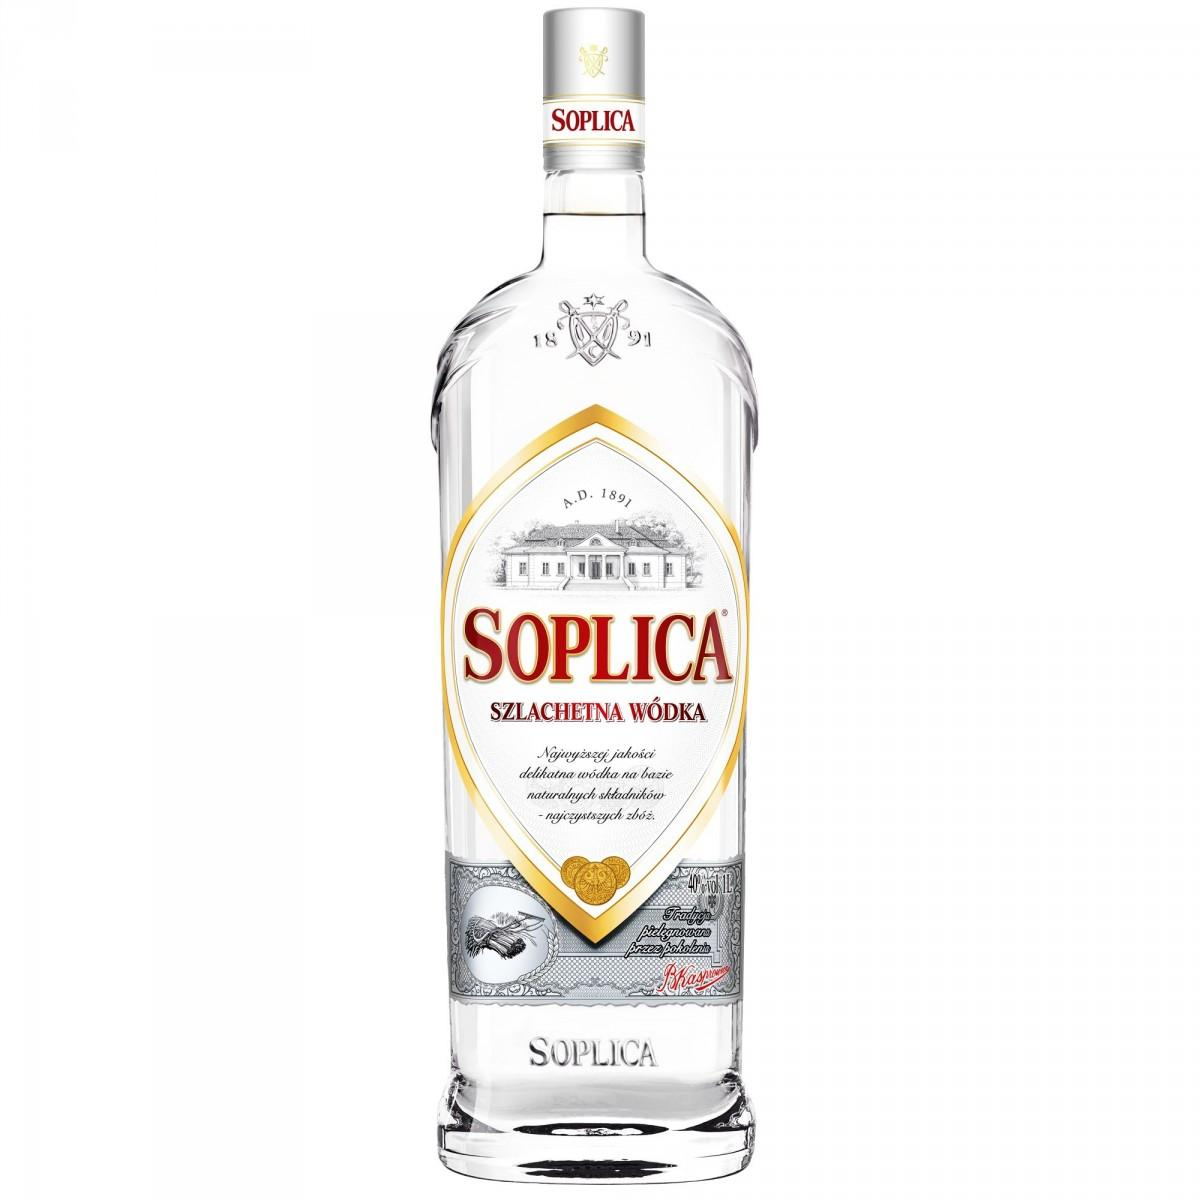 About the practical benefits of vodka ... in everyday life 71